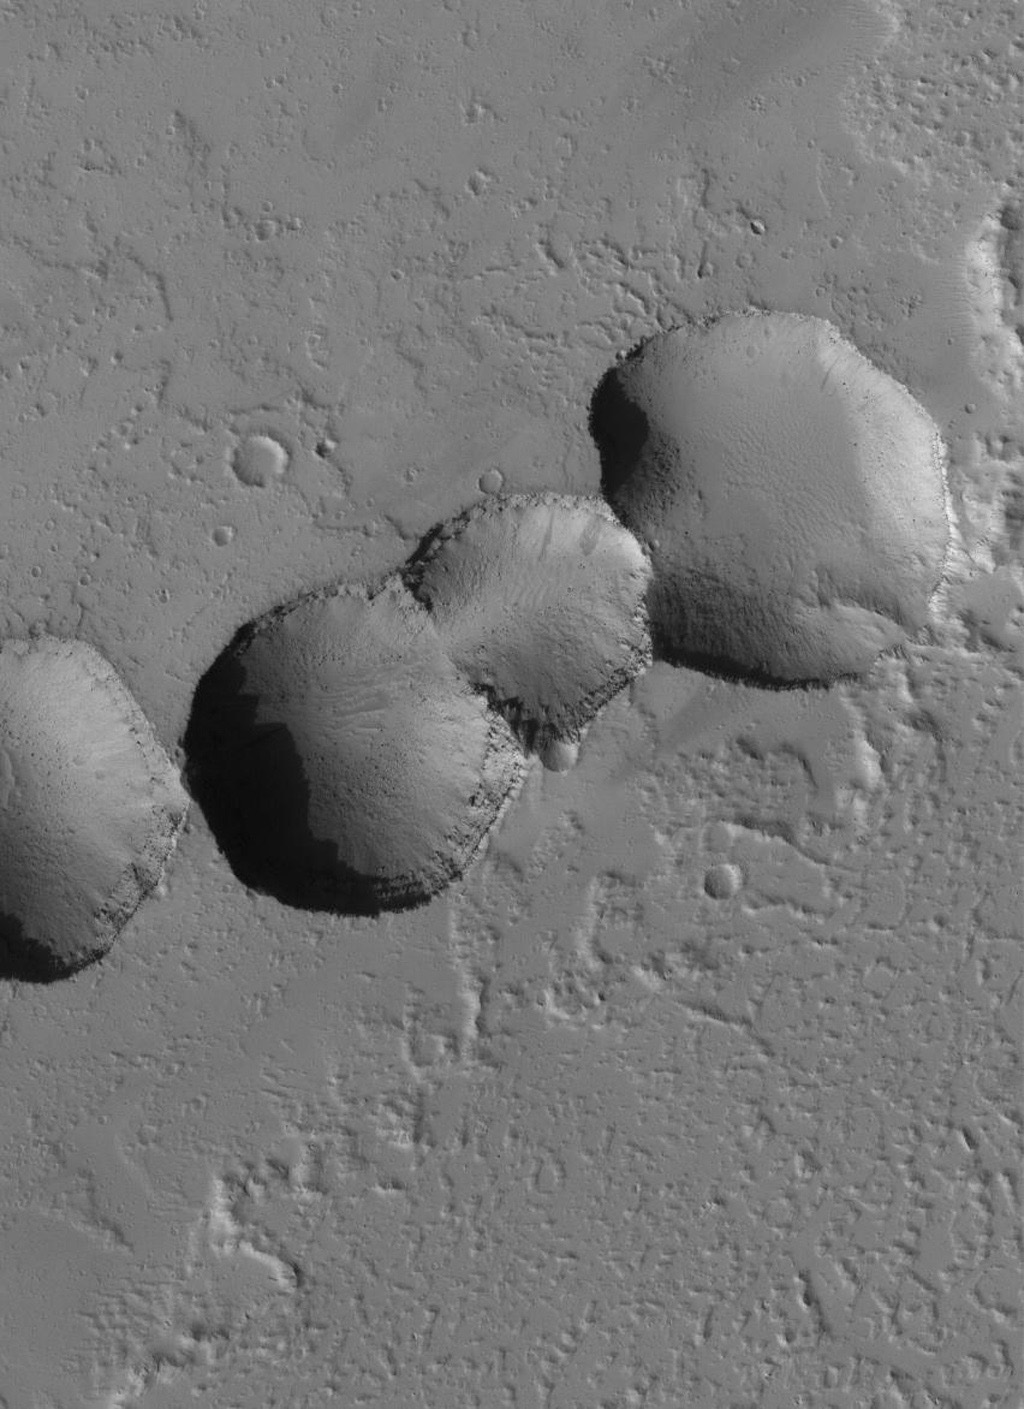 NASA's Mars Global Surveyor shows a chain of collapse pits fomed among dust-mantled lava flows in the eastern Tharsis region of Mars.